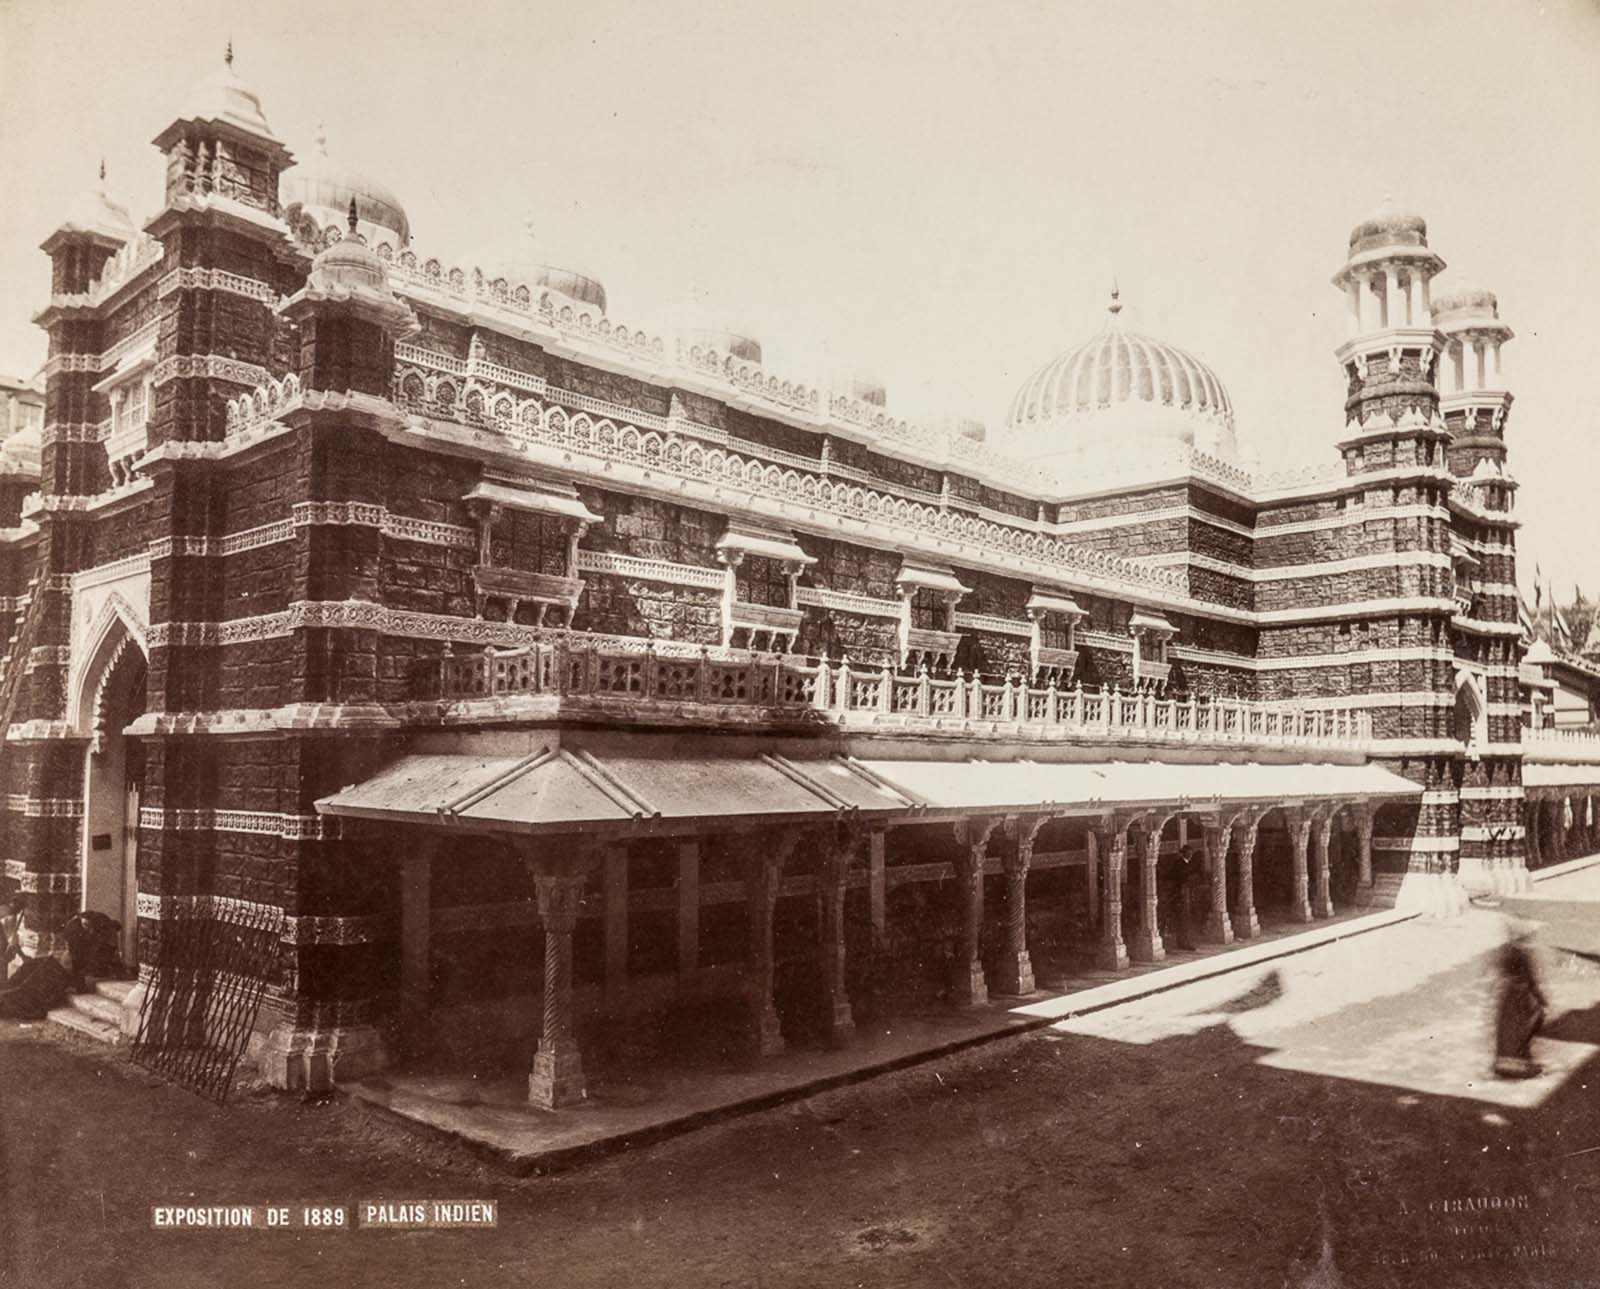 The palace of India.